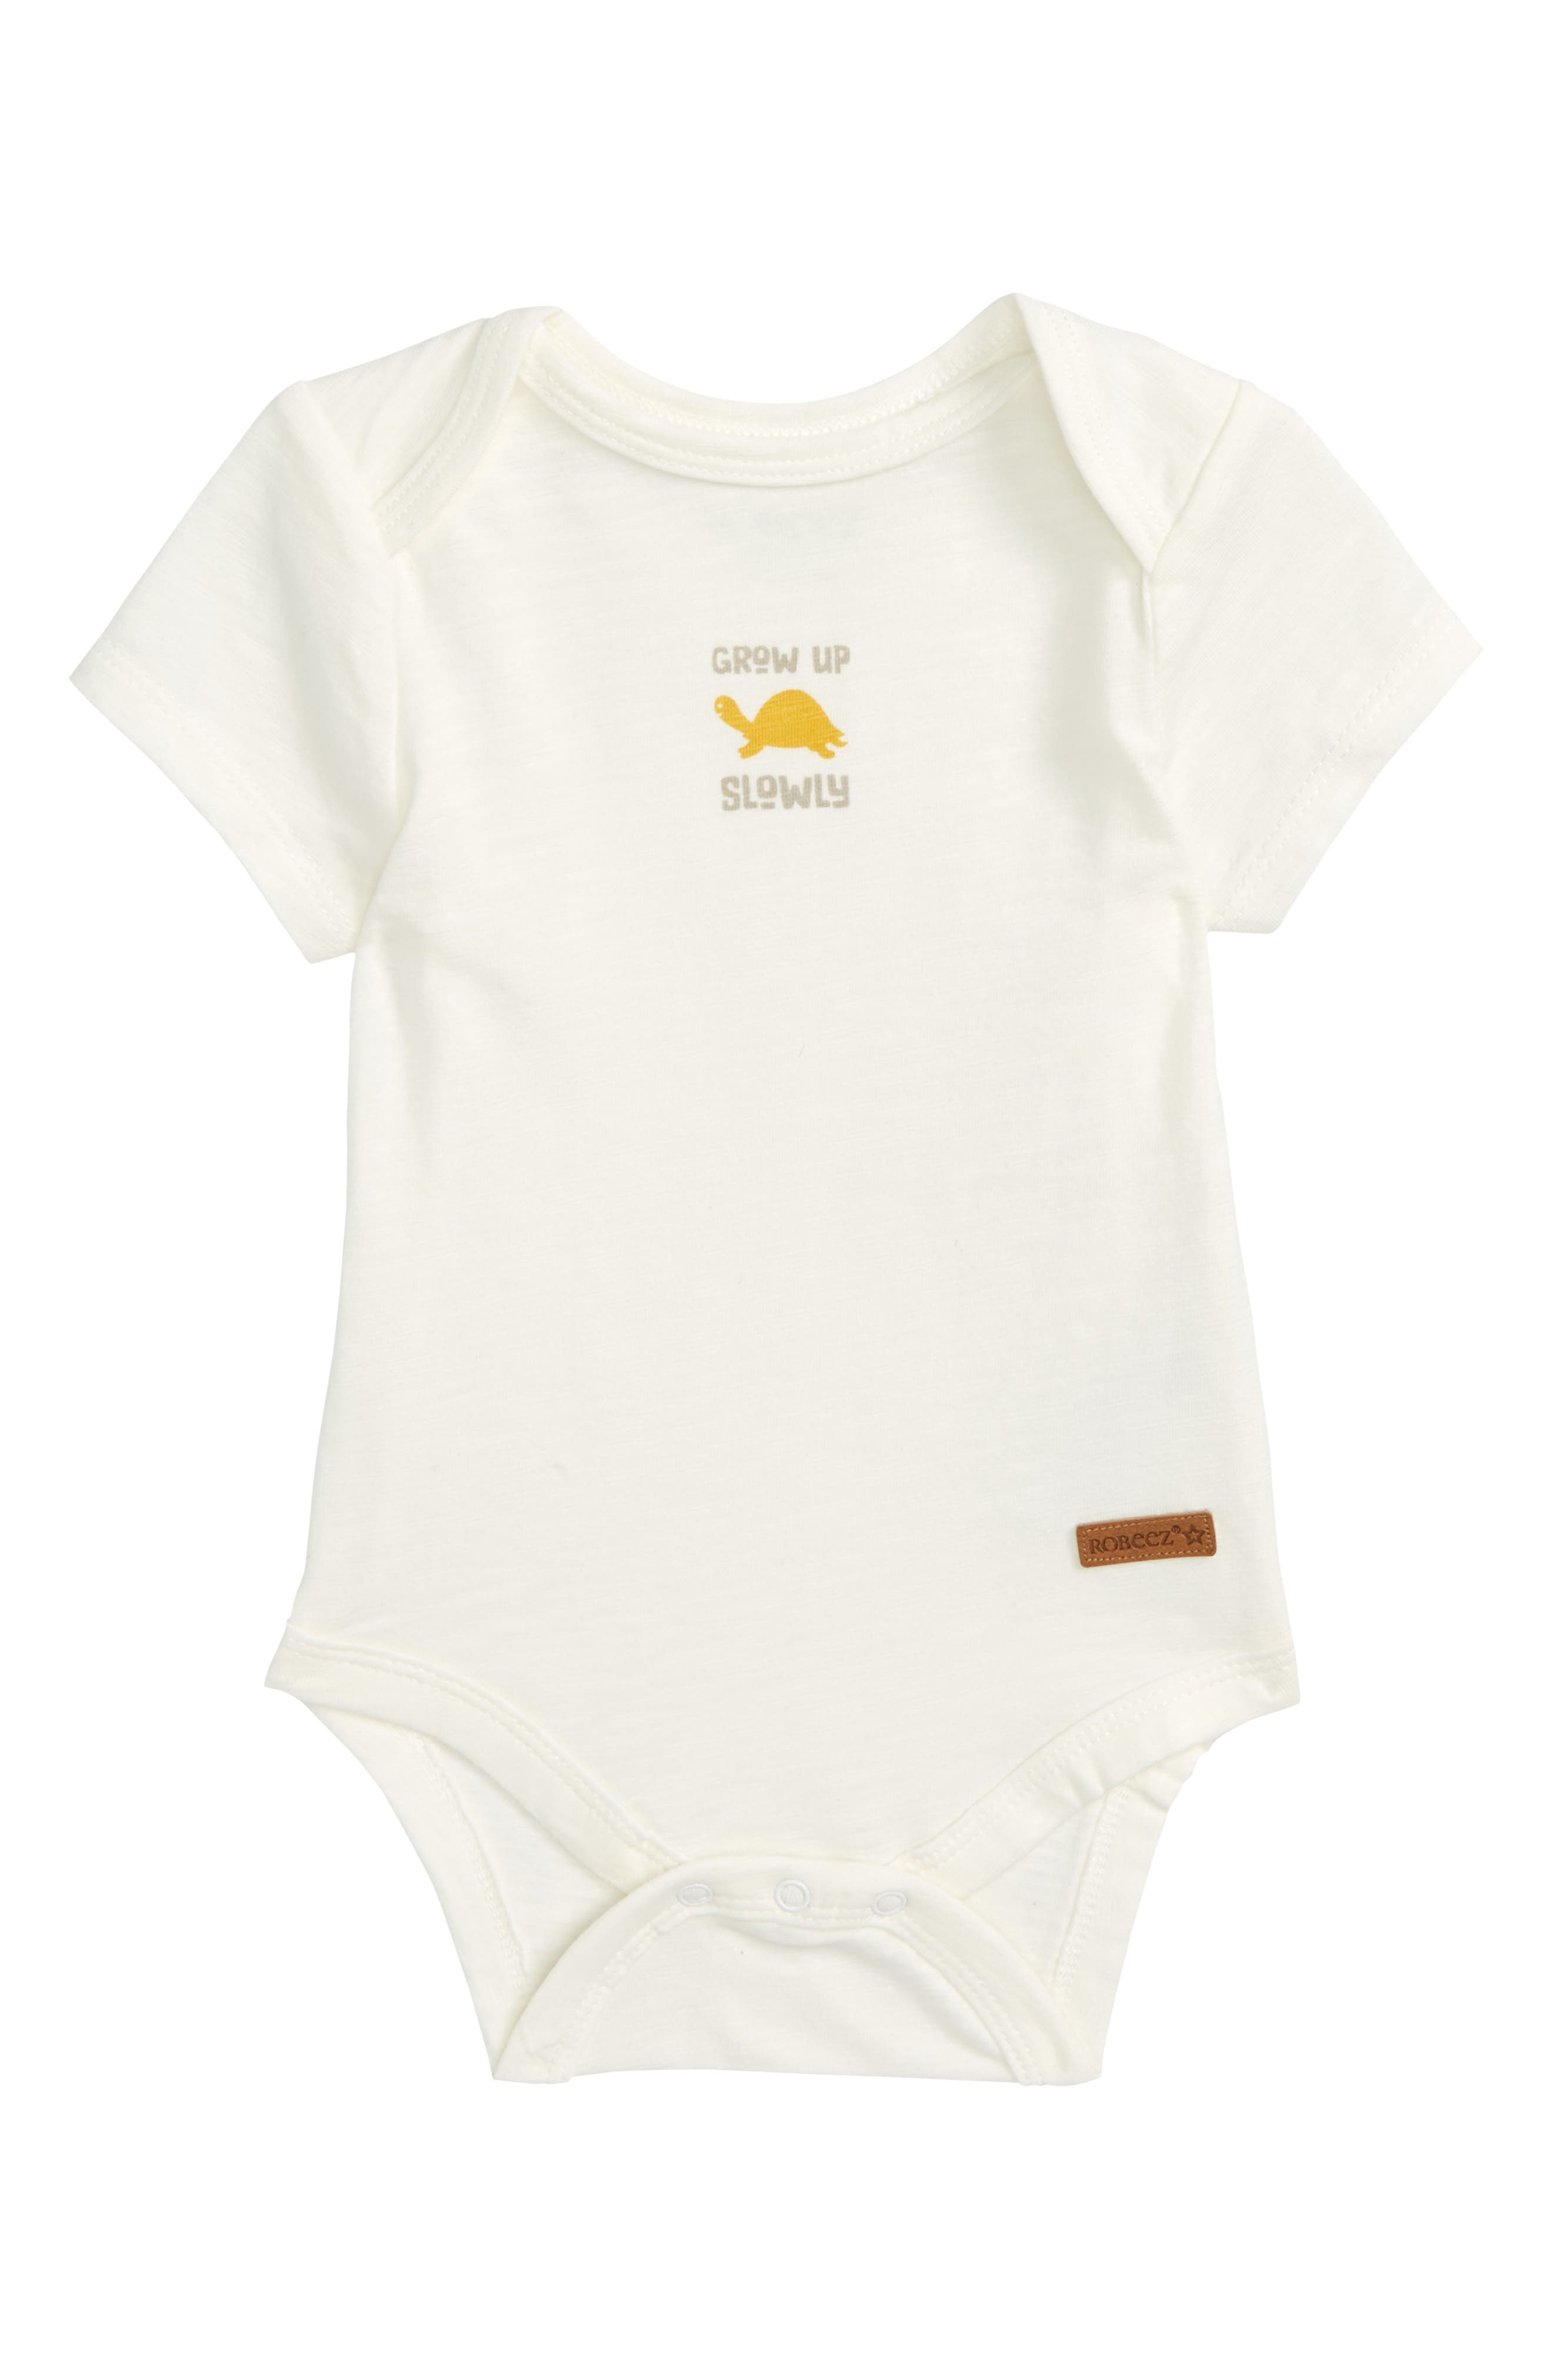 Grow Up Slowly Bodysuit,                             Main thumbnail 1, color,                             White